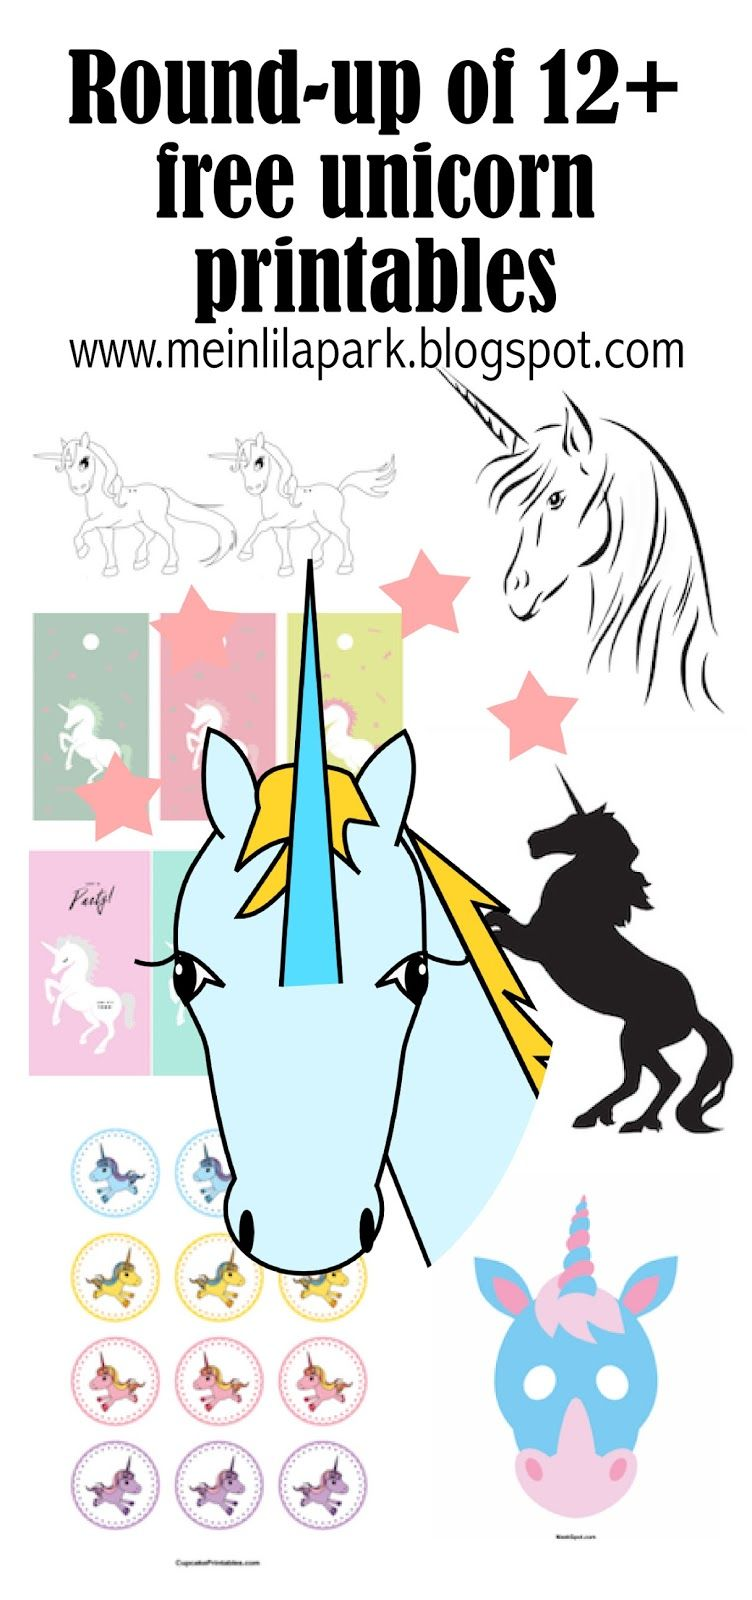 picture about Free Printable Unicorn titled 12+ cost-free unicorn printables - Einhorn - spherical-up